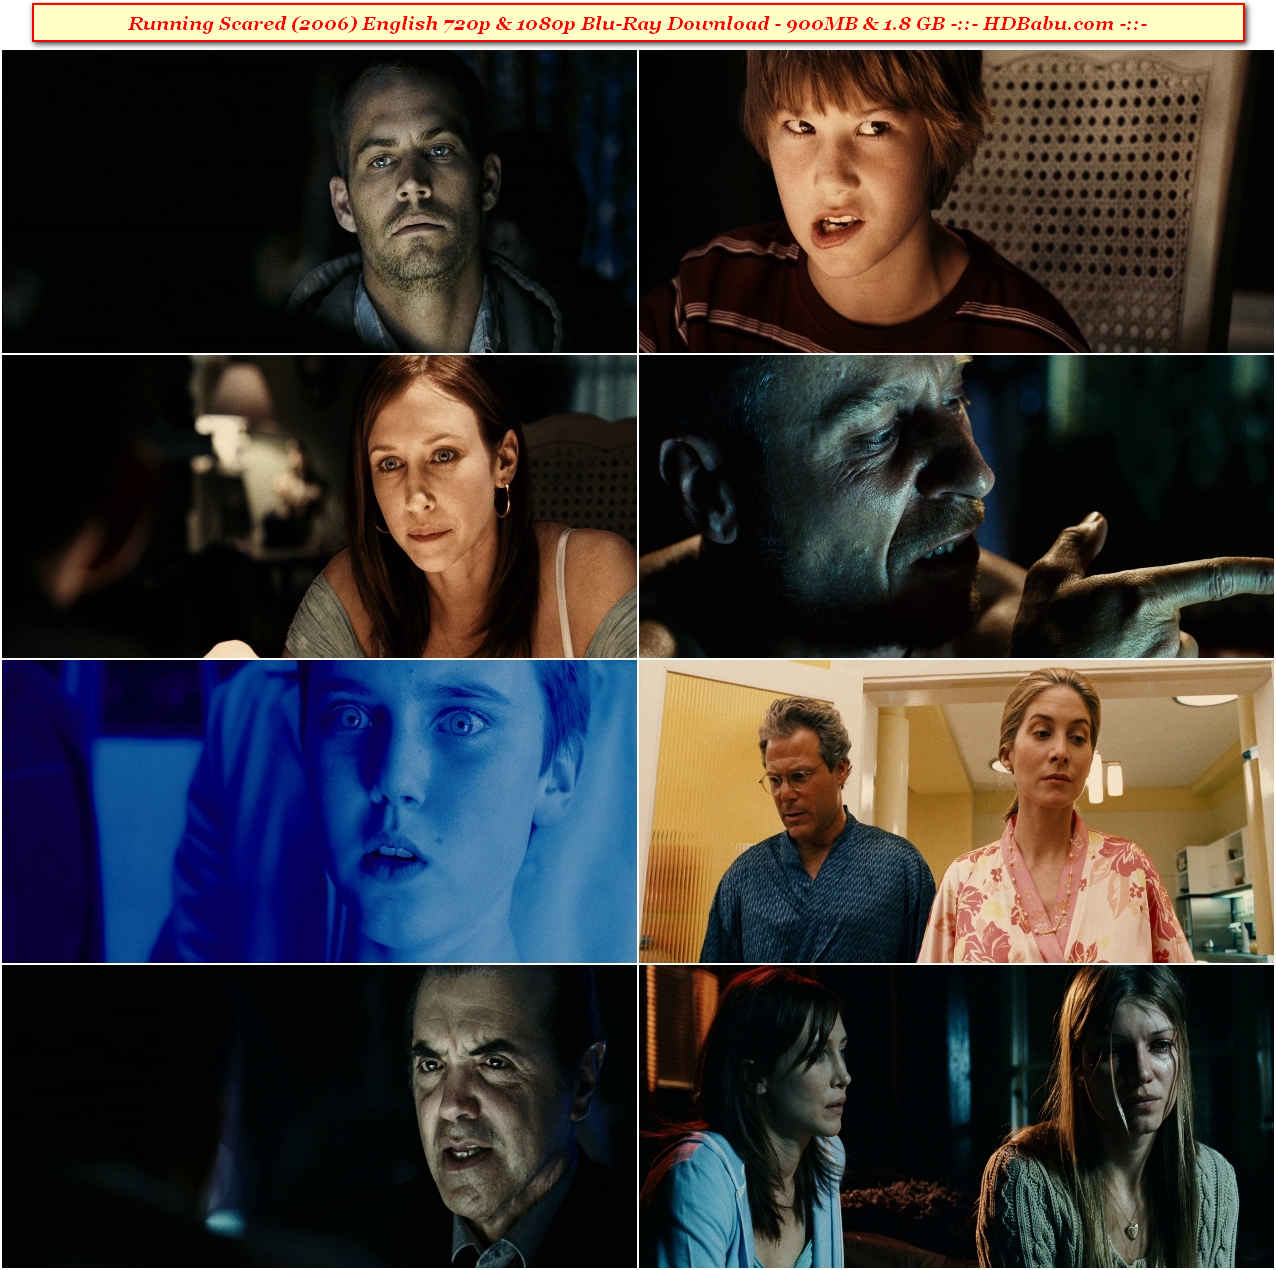 Running Scared Full Movie Download